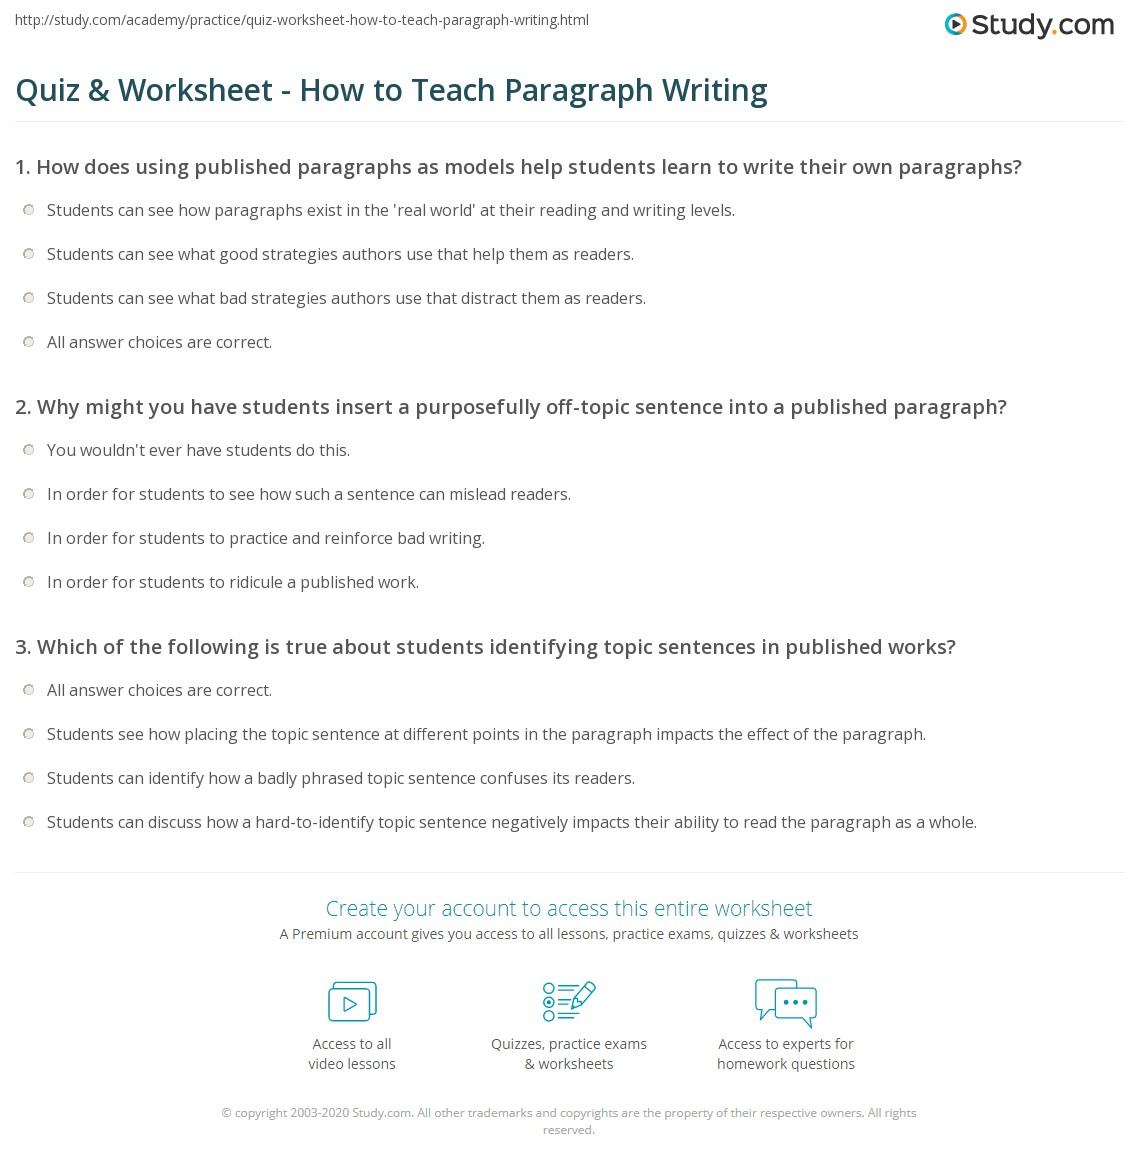 worksheet Writing Paragraphs Worksheets quiz worksheet how to teach paragraph writing study com print teaching worksheet